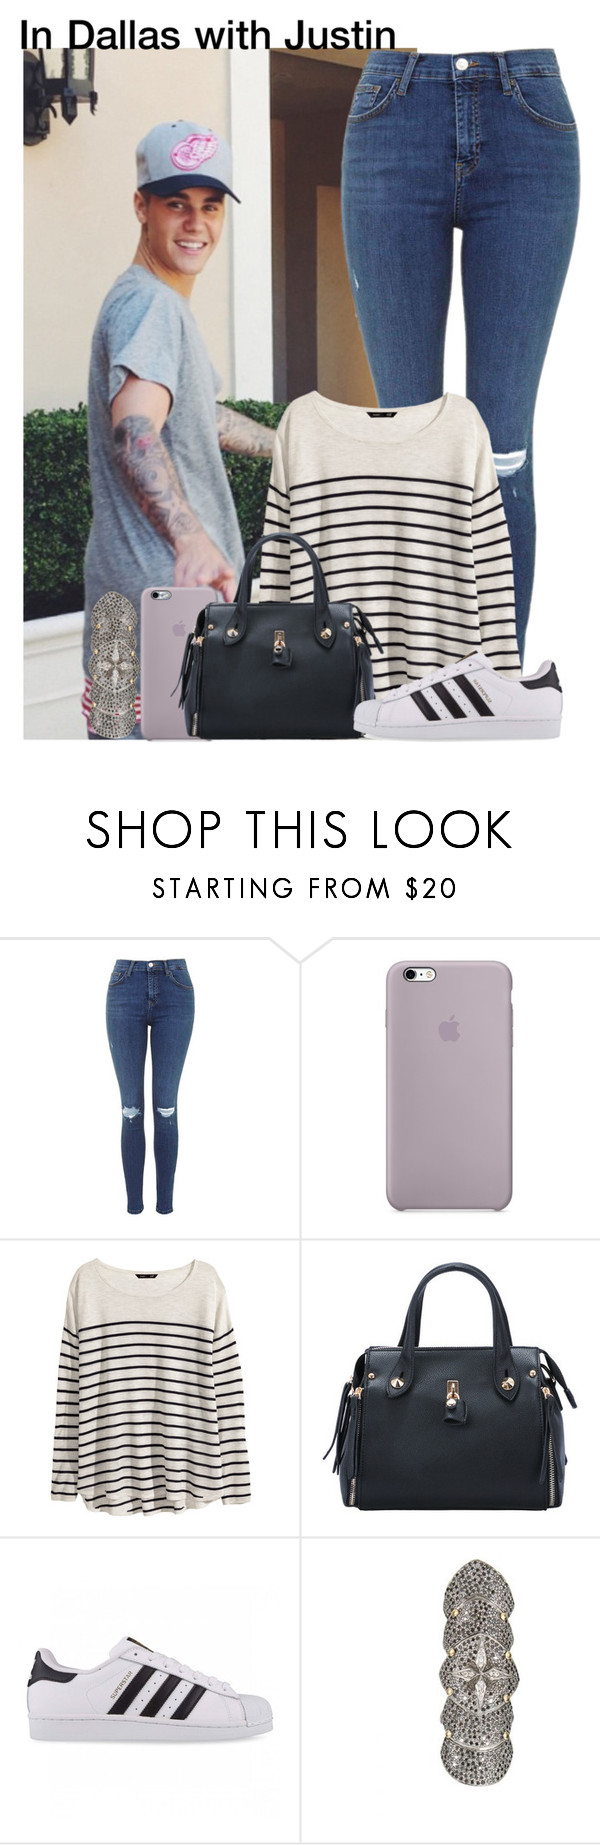 """In Dallas with Justin"" by irish26-1 ❤ liked on Polyvore featuring moda, H&M, adidas Originals e Catherine Angiel"